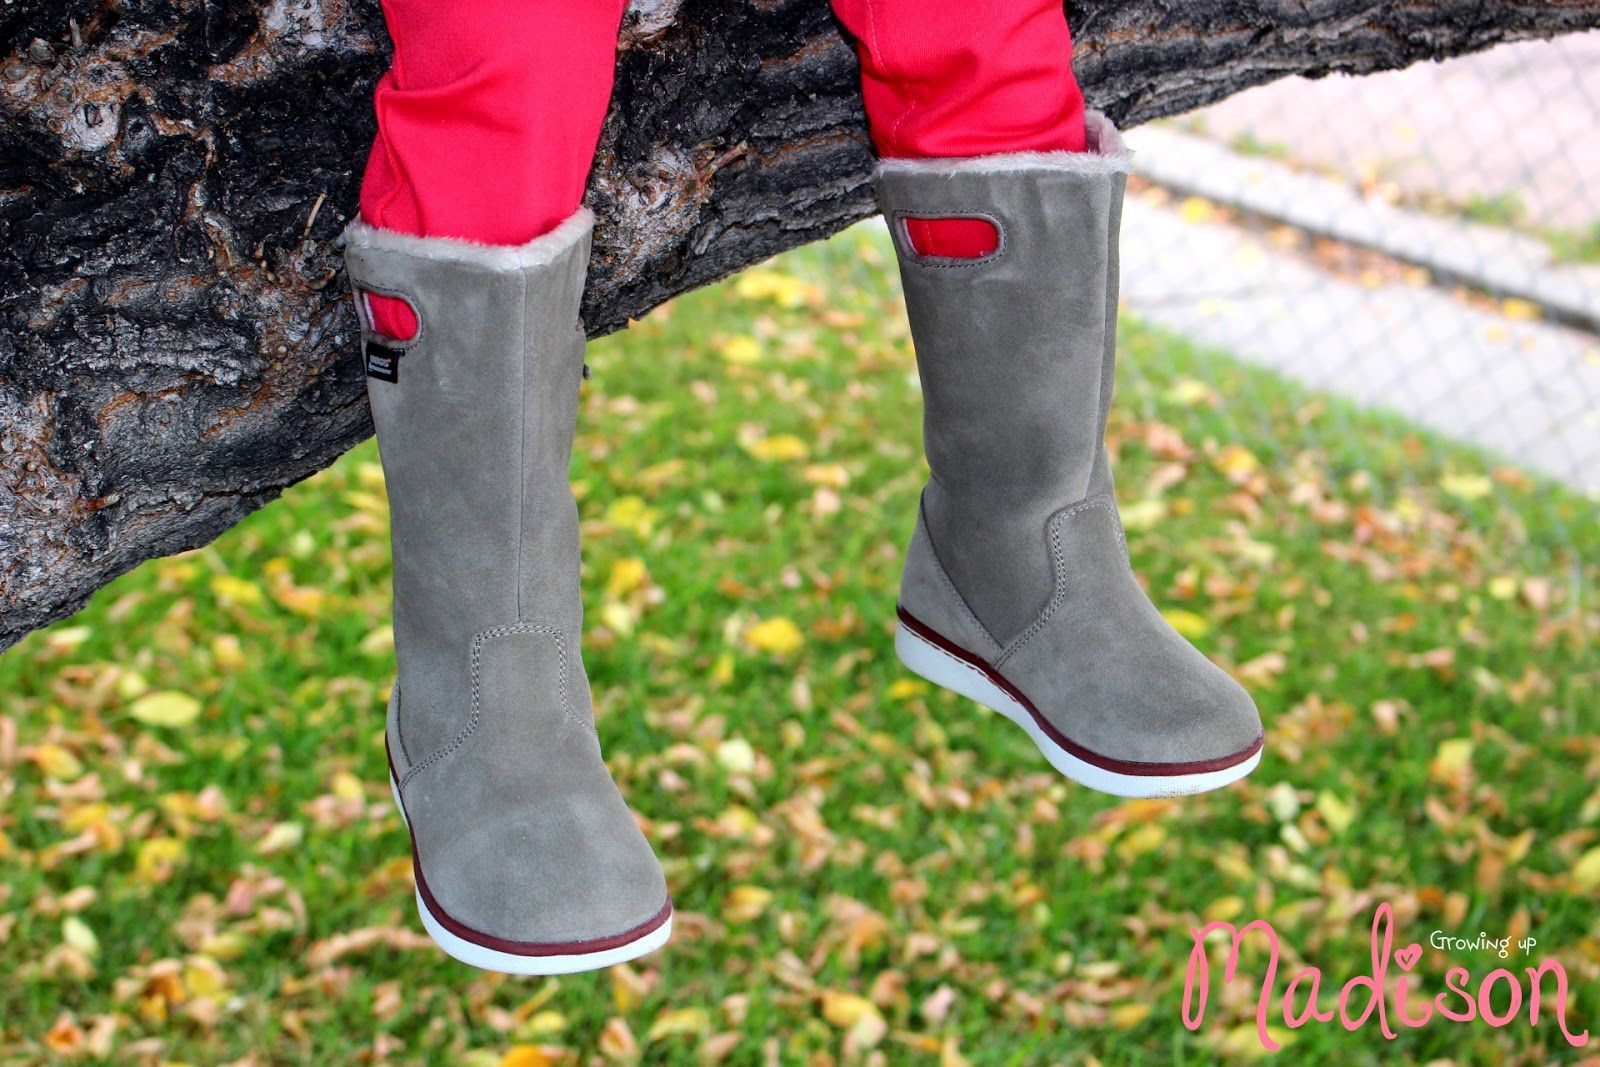 Bogs Boga - The Waterproof Winter Boots for Kids | Growing